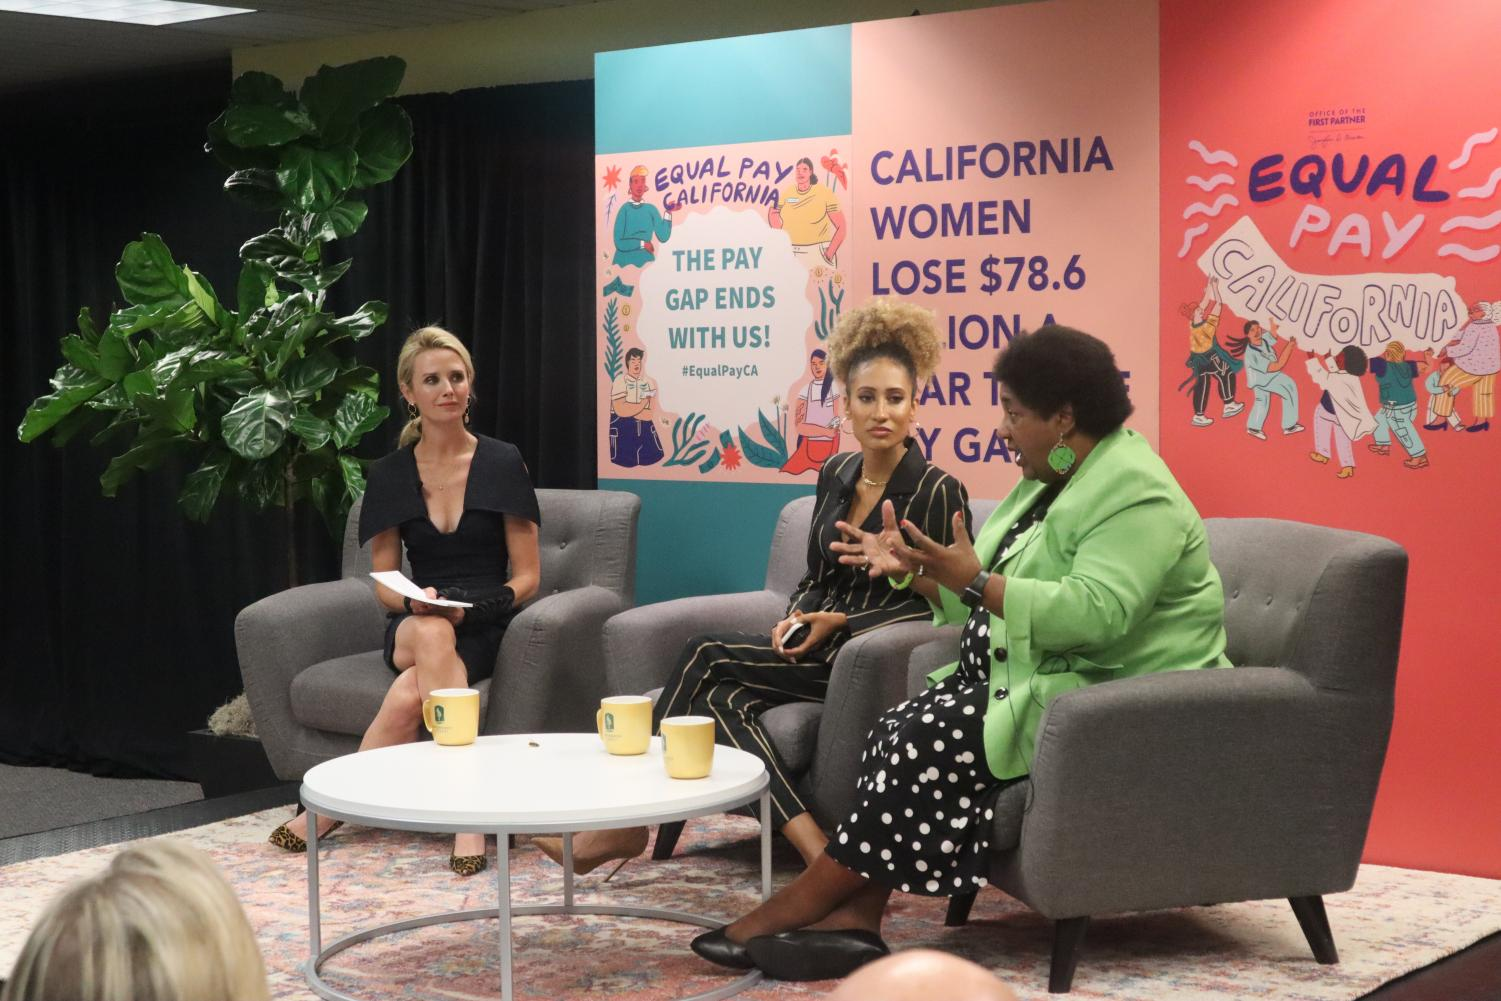 From left, California First Partner Jennifer Siebel Newsom, Sac State alumna and author Elaine Welteroth and California Assemblymember Shirley Weber discuss gender pay disparities at an equal pay forum in Sac State's Carlsen Center on Tuesday, August 27.